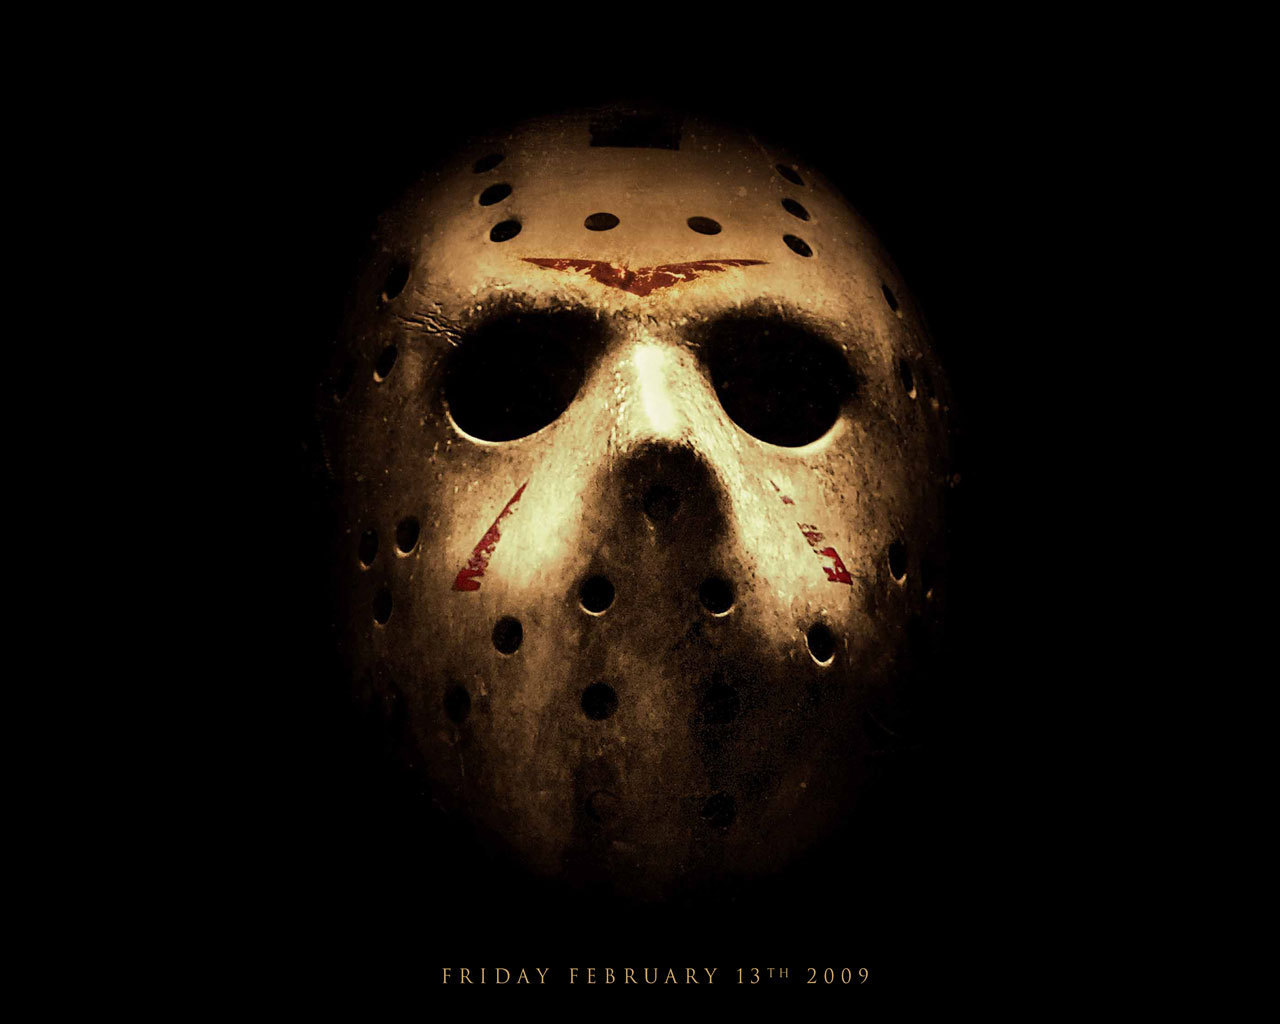 New Friday the 13th wallpaper - Horror Movies 1280x1024